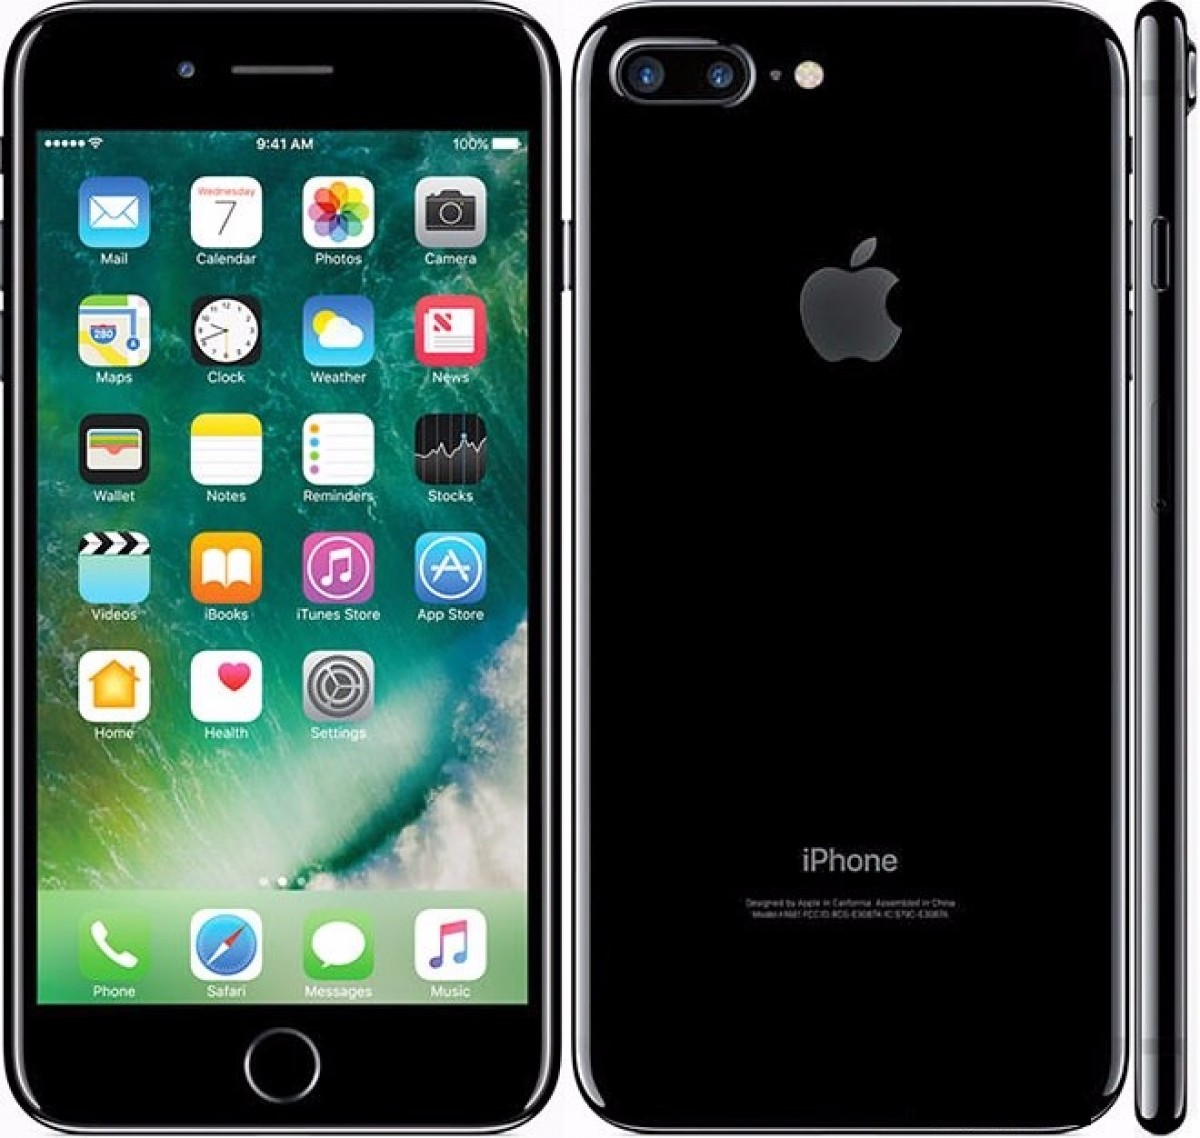 Tecnoflash: iPhone 7 Plus A1661 Y A1784: Análisis y Especificaciones